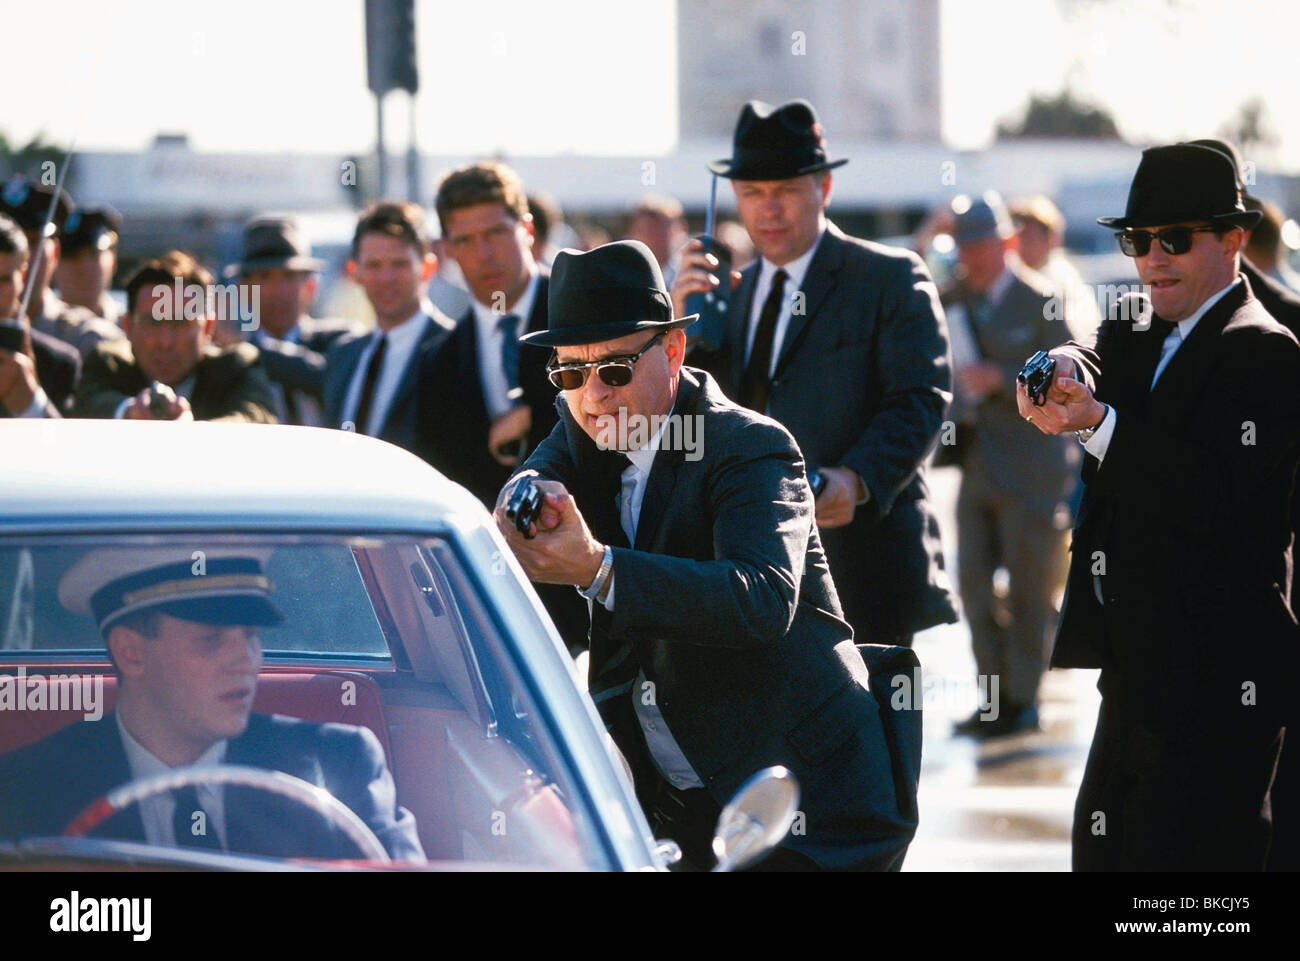 CATCH ME IF YOU CAN (2002) TOM HANKS CIYC 001-20 - Stock Image